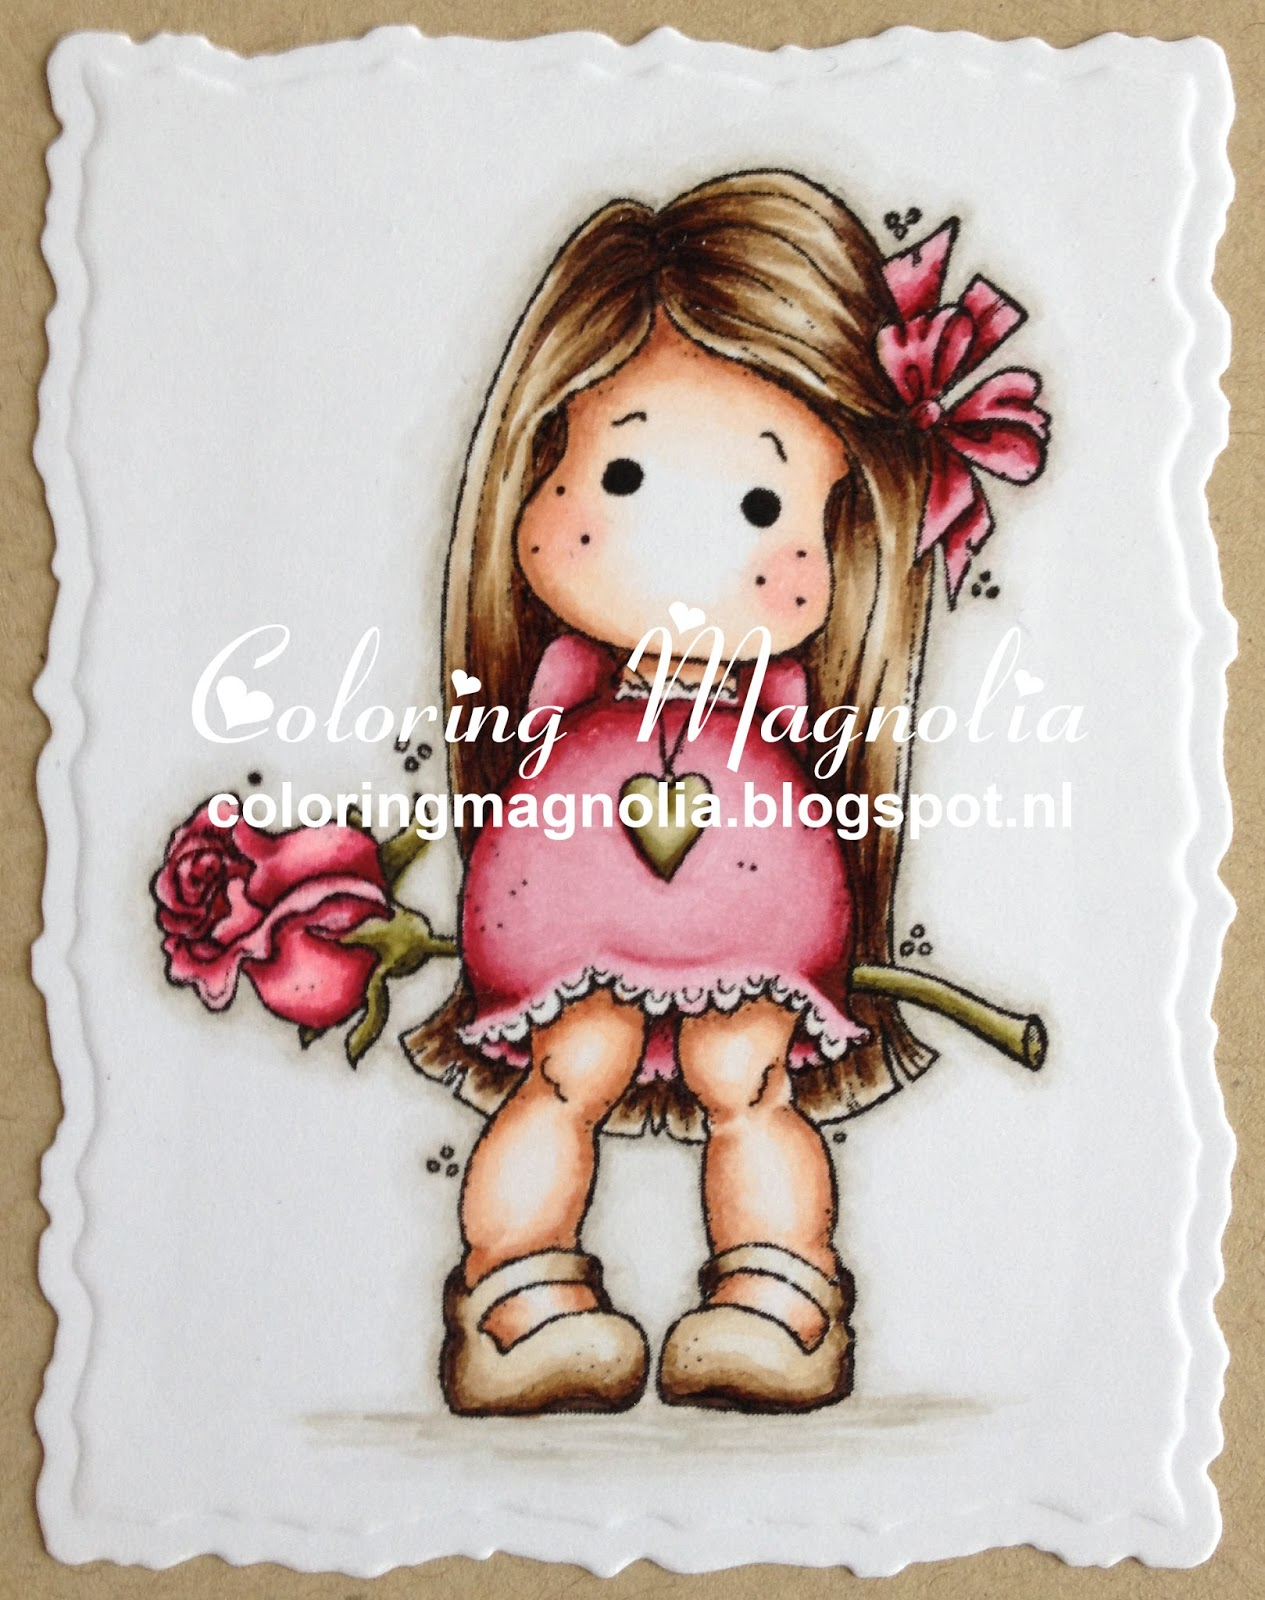 Coloring Magnolia Stamp 2013 Special Moments Collection - Tilda with Heart (Cross) Necklace